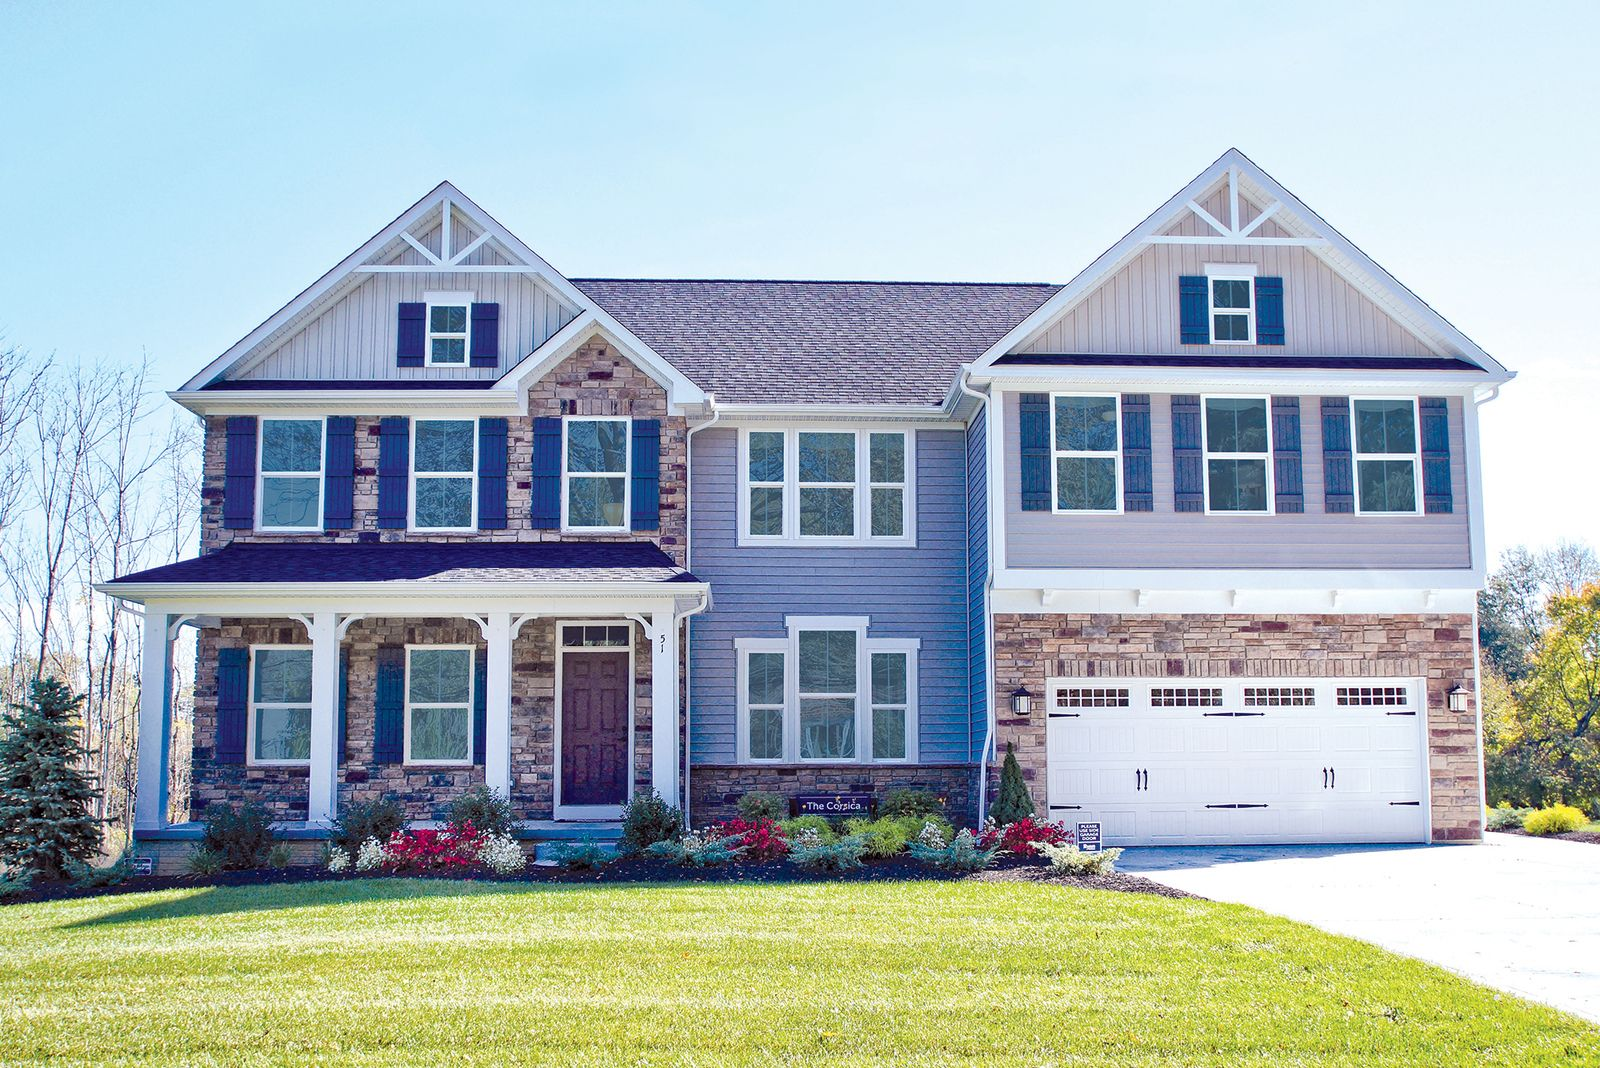 WELCOME HOME TO HAMPTON PLACE:North Ridgeville's best-selling community with large homesites. Click for mid $200s homes.Minutes from Avon, included Craftsman exteriors and community pool!Click here to schedule your visit today!